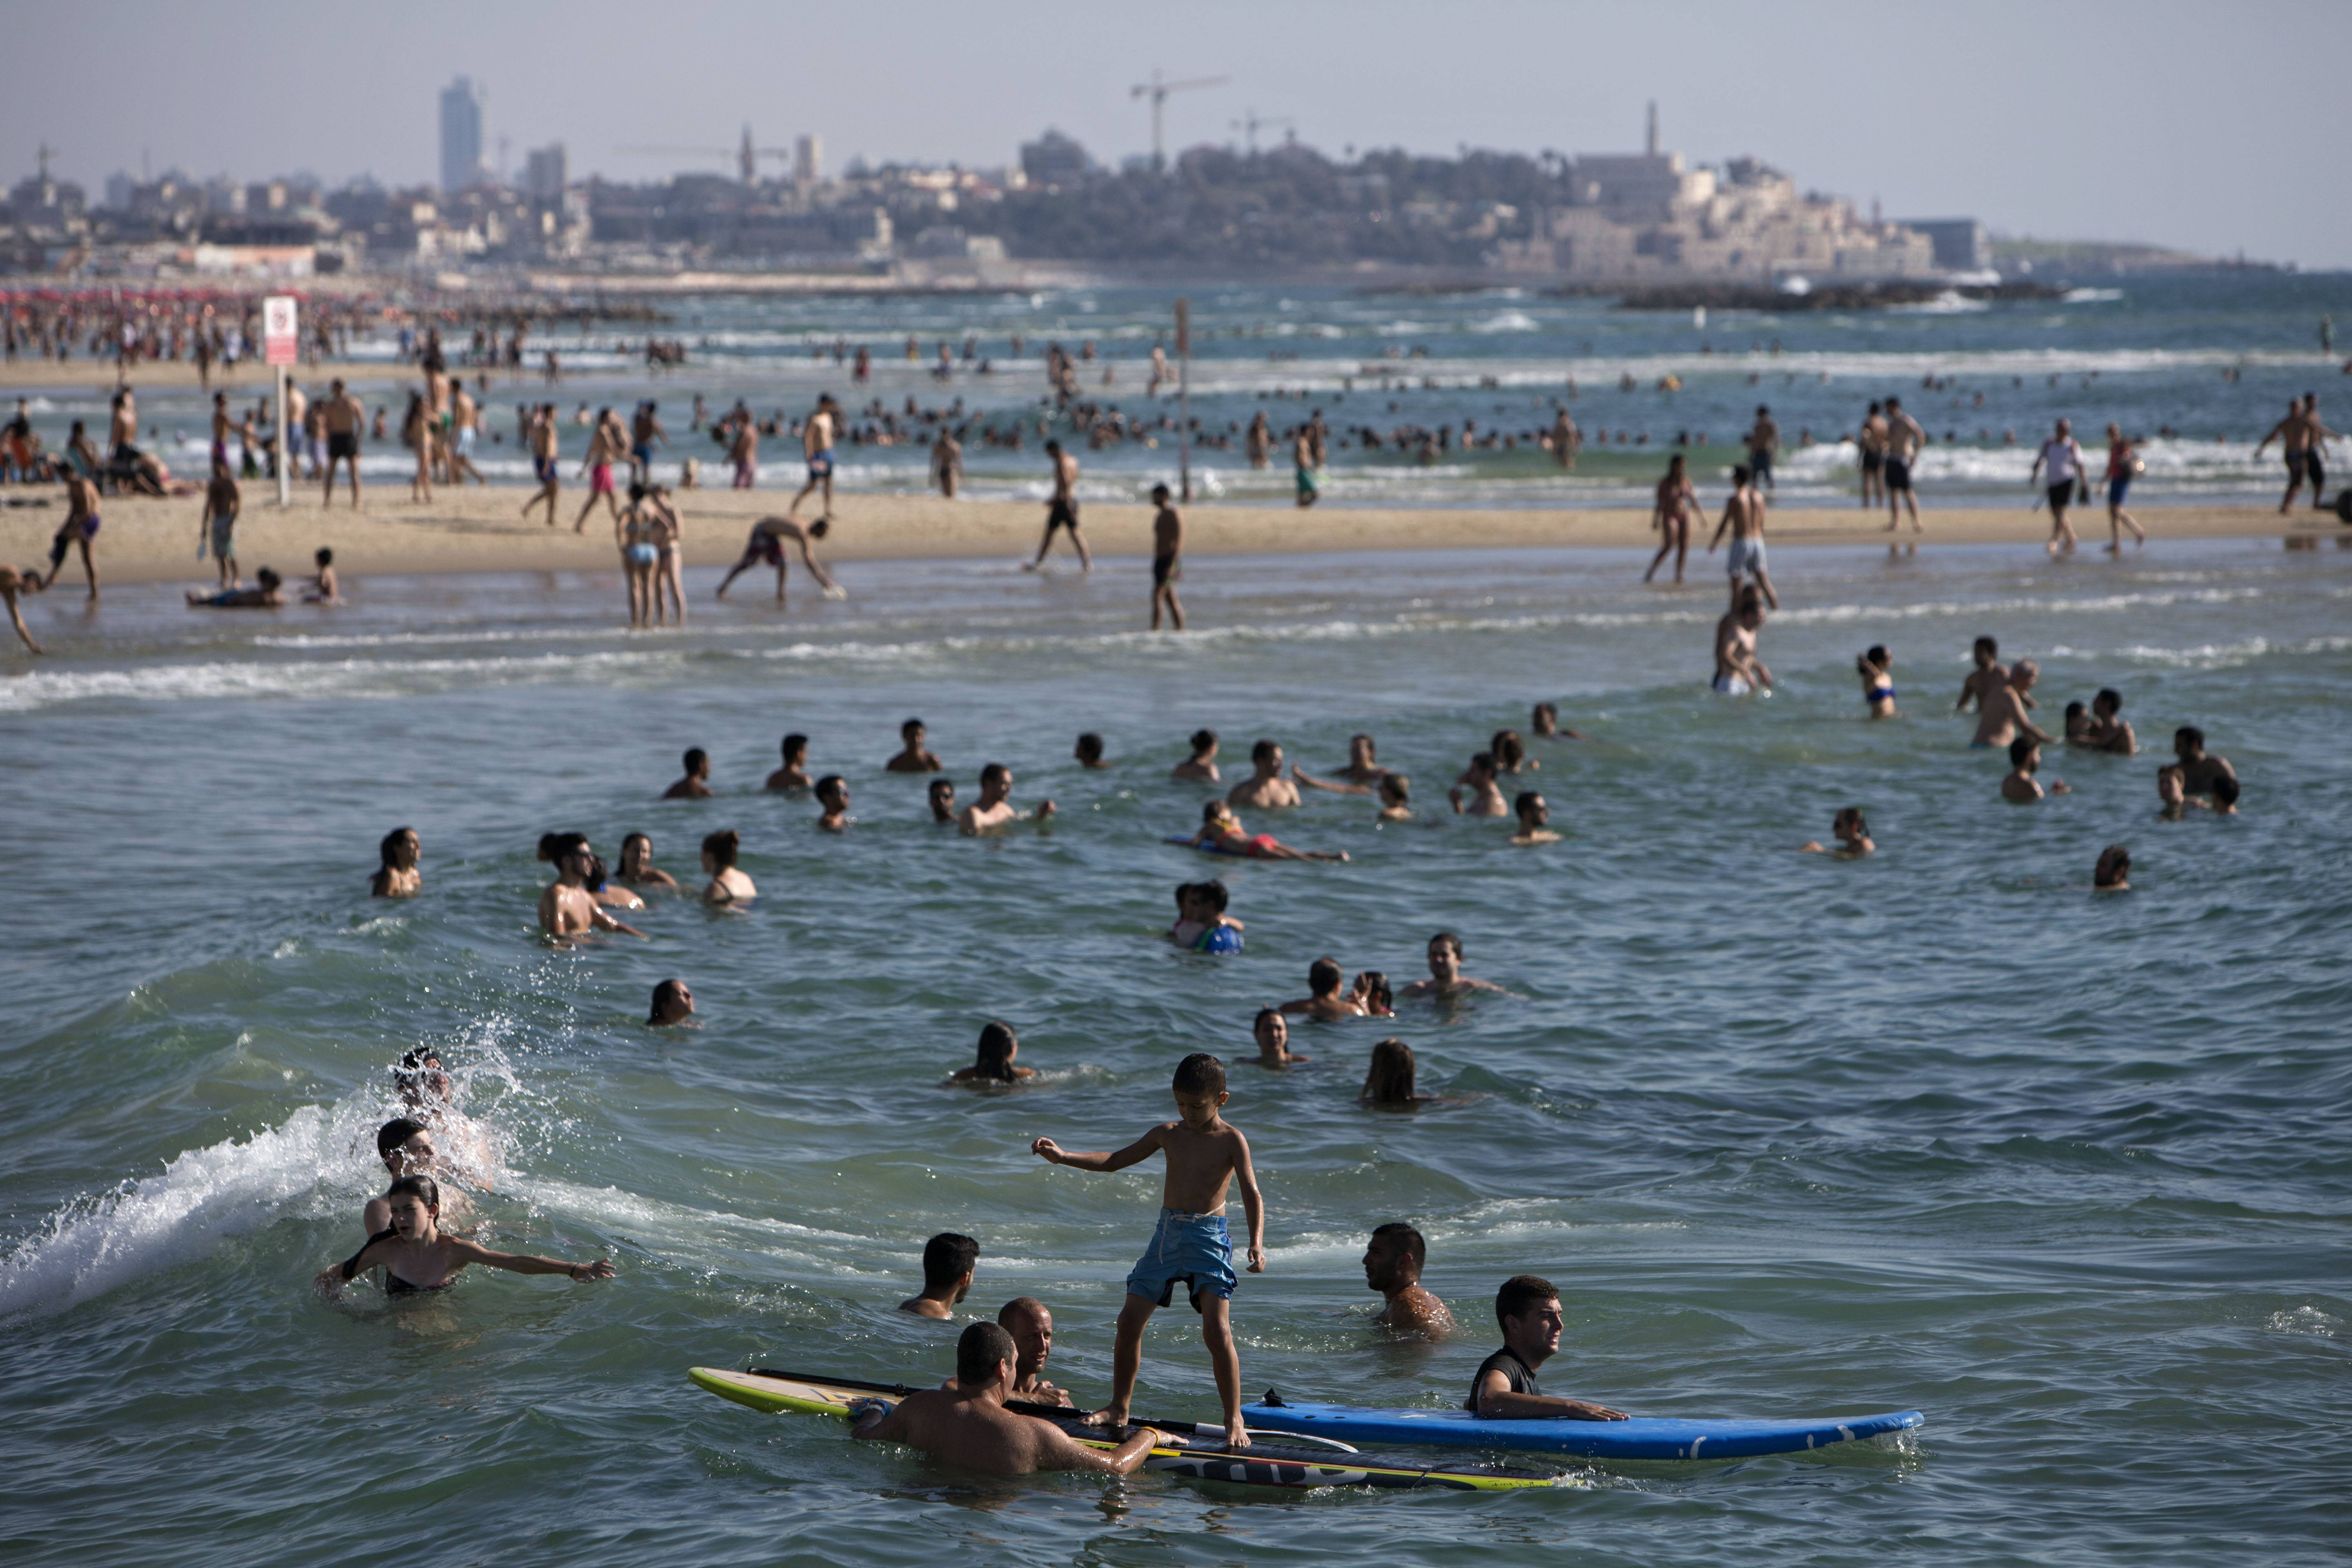 Israelis and tourists enjoy the Mediterranean Sea beachfront during a humanitarian cease-fire in the Gaza war, in Tel Aviv, Israel, Saturday, July 26. Israel agreed Saturday to extend a 12-hour humanitarian truce in the Gaza war by four hours, a Cabinet minister said. In Gaza, a health official said the Palestinian death toll in 19 days of fighting had surpassed 1,000.